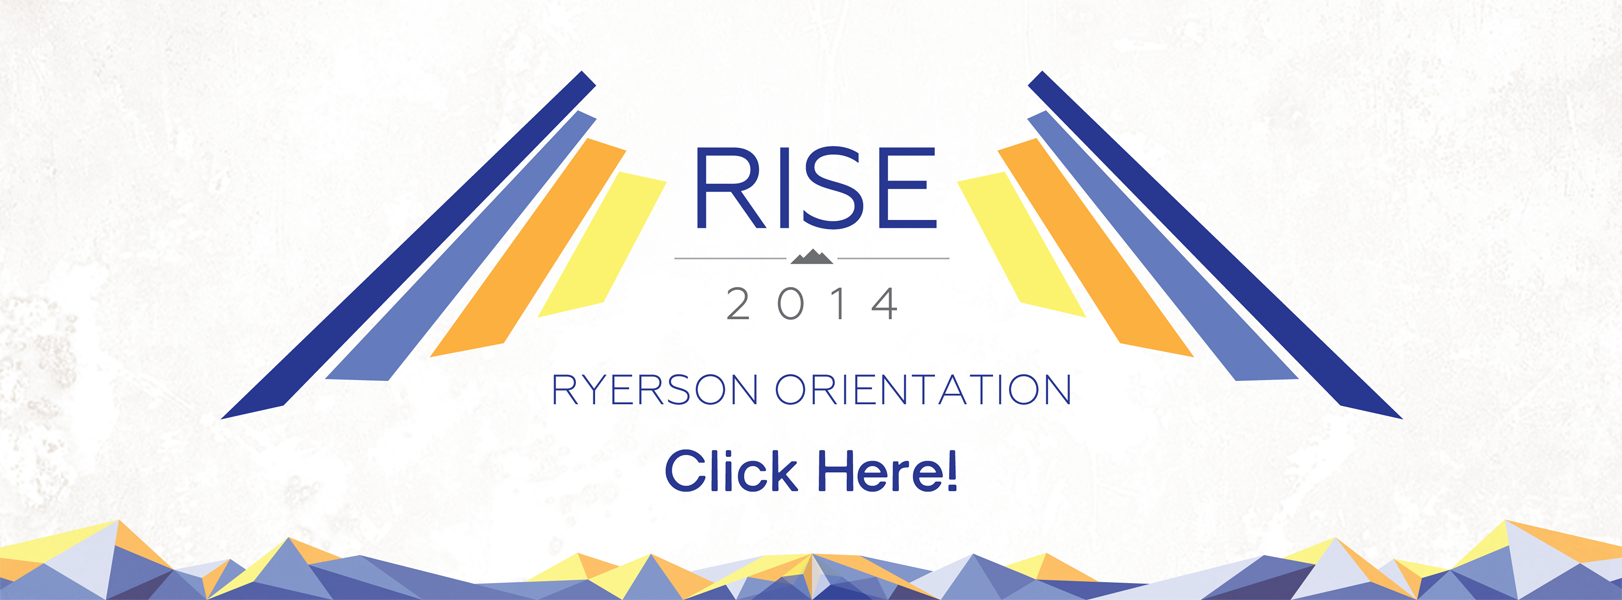 RISE 2014 banner with link to Orientation page